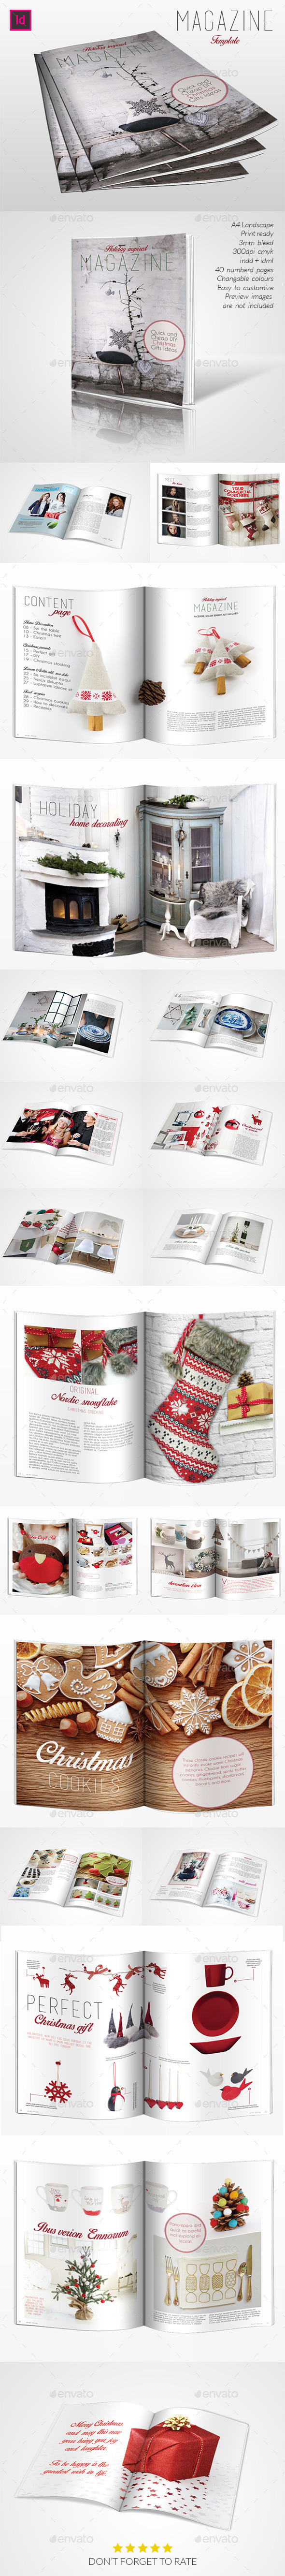 Holyday Inspired Magazine Template - Magazines Print Templates